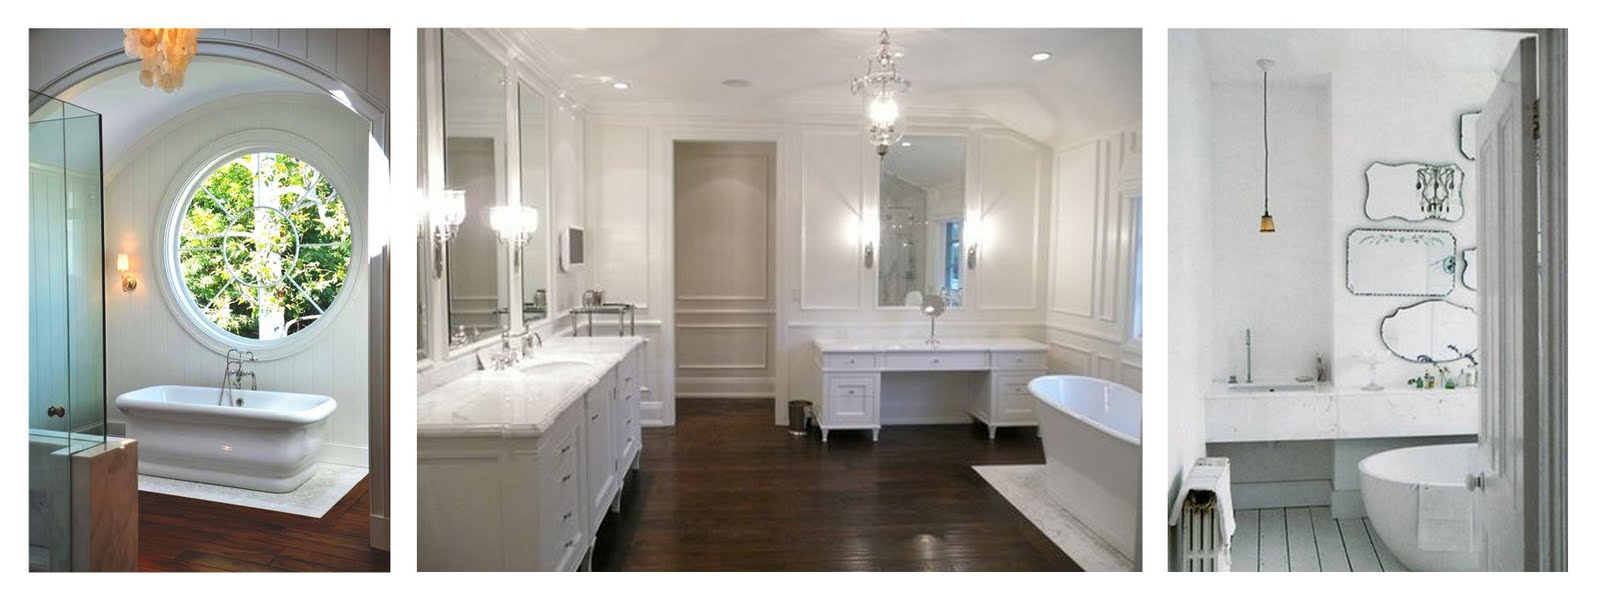 Beaucoup de Travail: Beautiful Bathrooms...